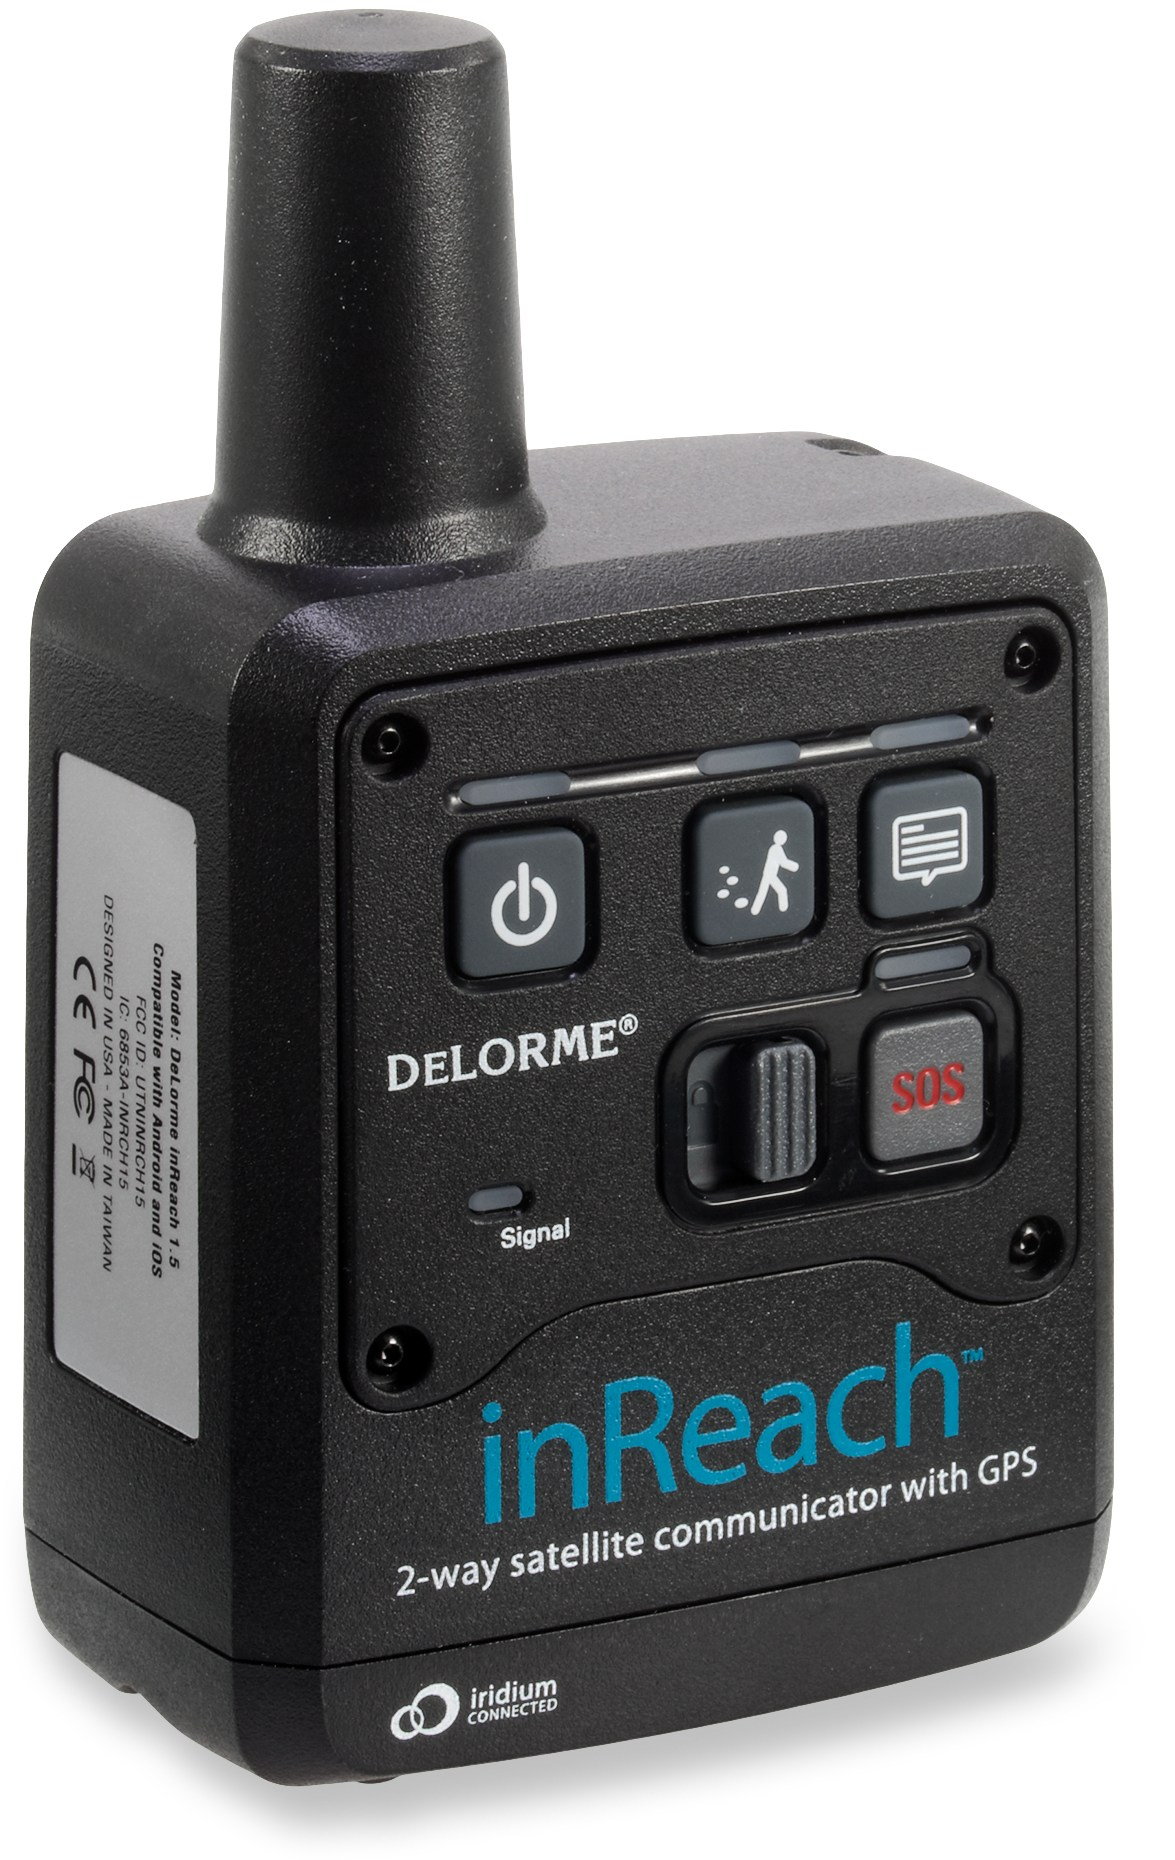 This is the InReach device (no affiliation).  It can text via satellite when you have no signal.